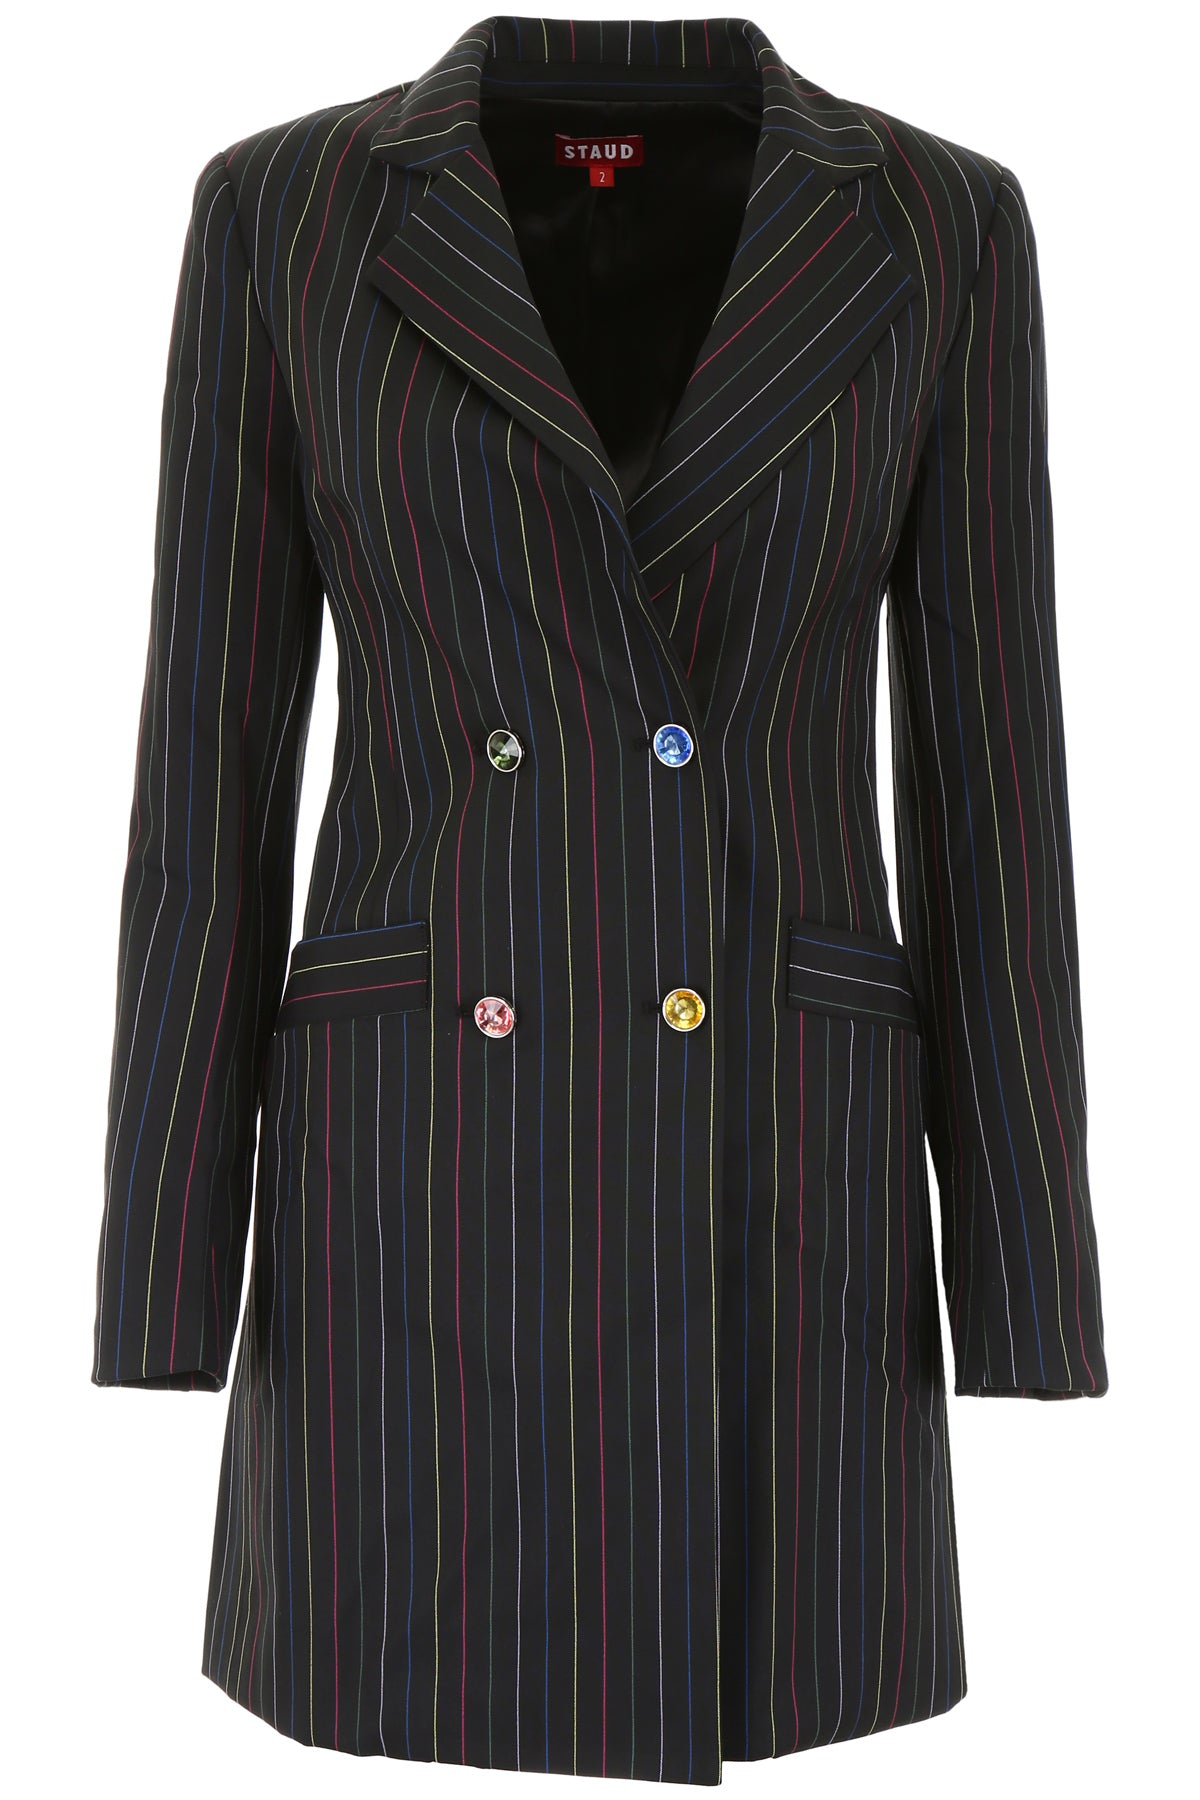 Staud Blazers STAUD ROXY PINSTRIPED BLAZER MINI DRESS